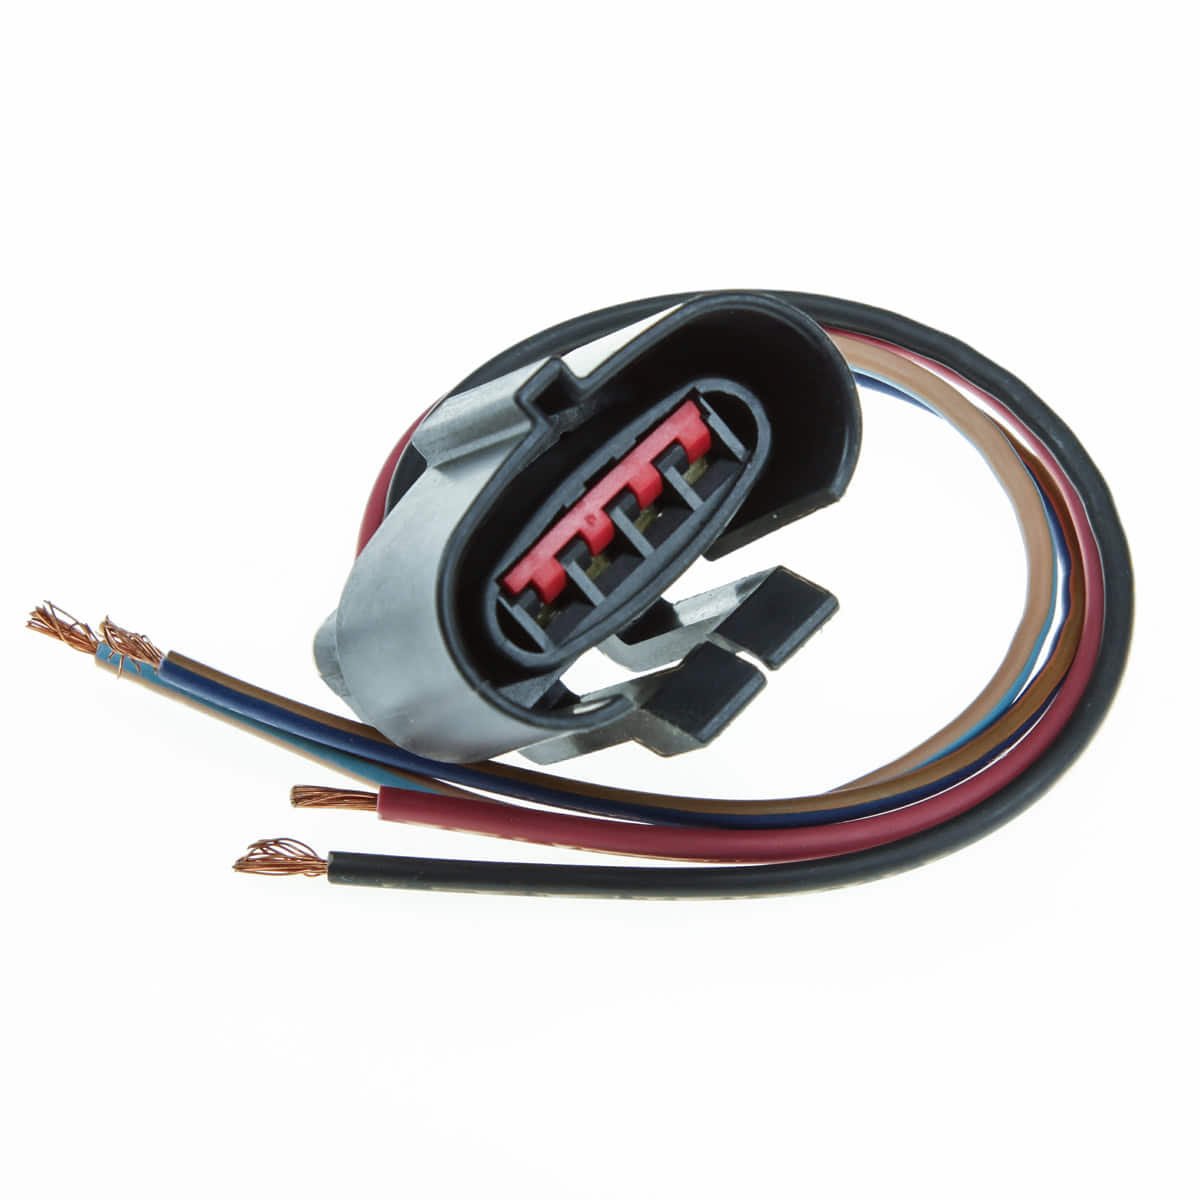 4 wire pigtail for Ford MAF / MAP / coils